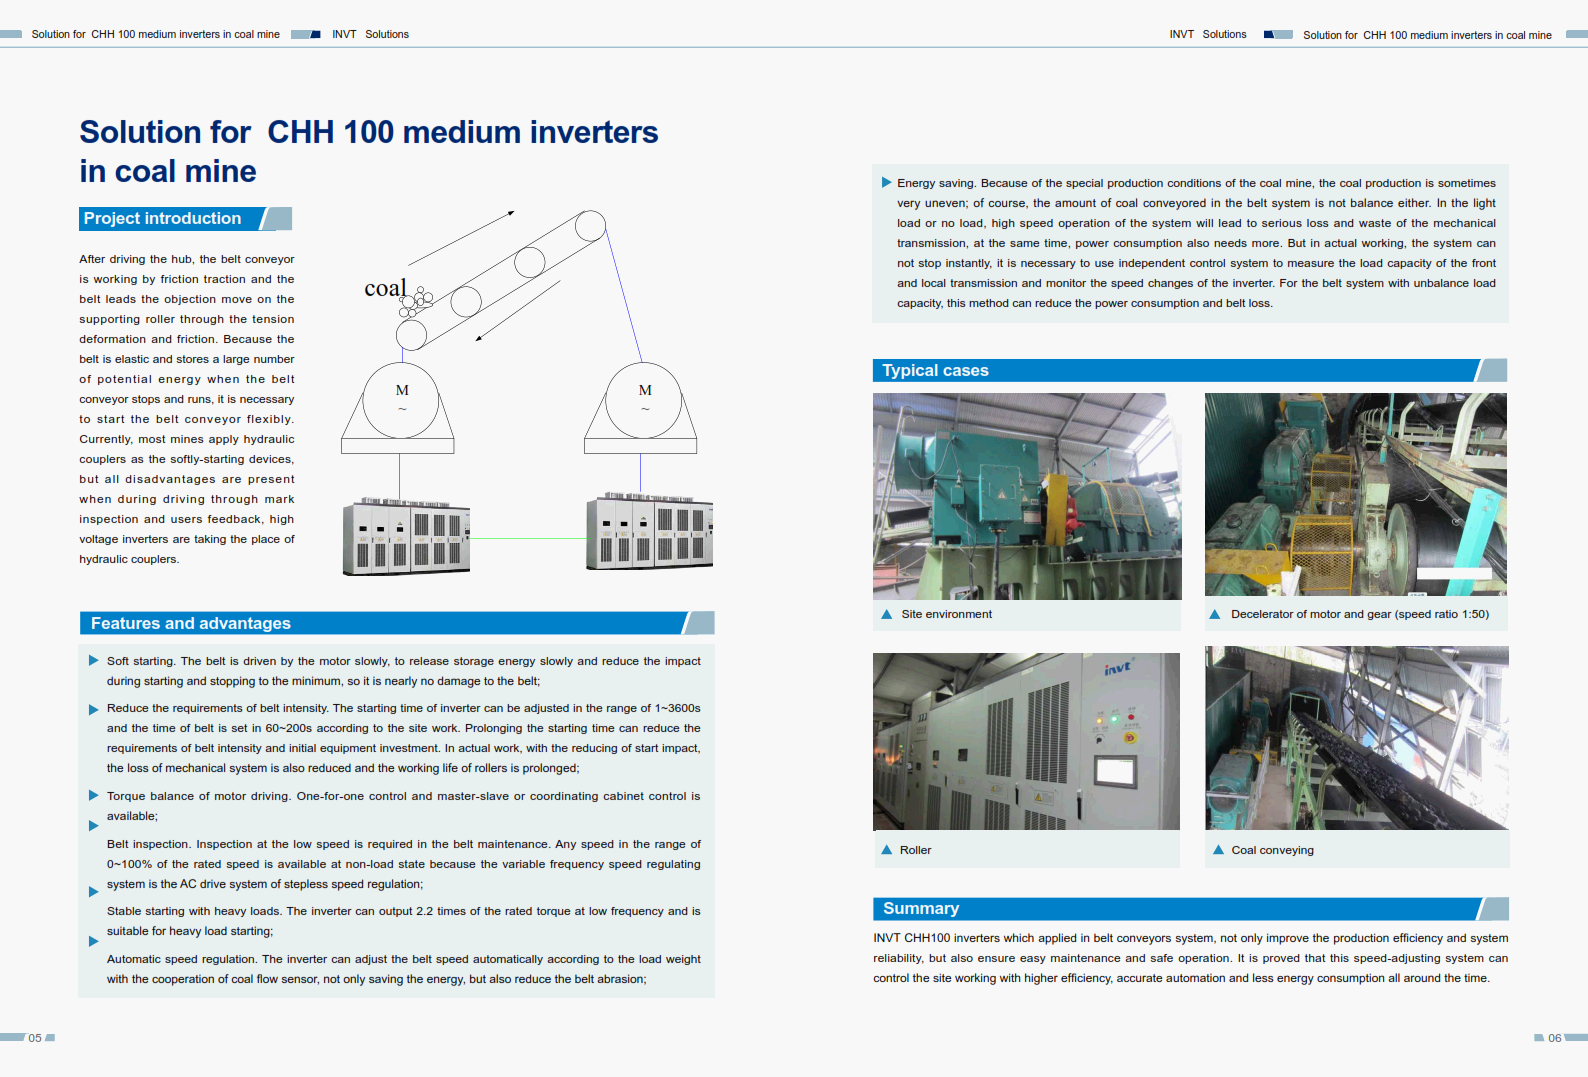 Solution for  CHH 100 medium inverters in coal mine